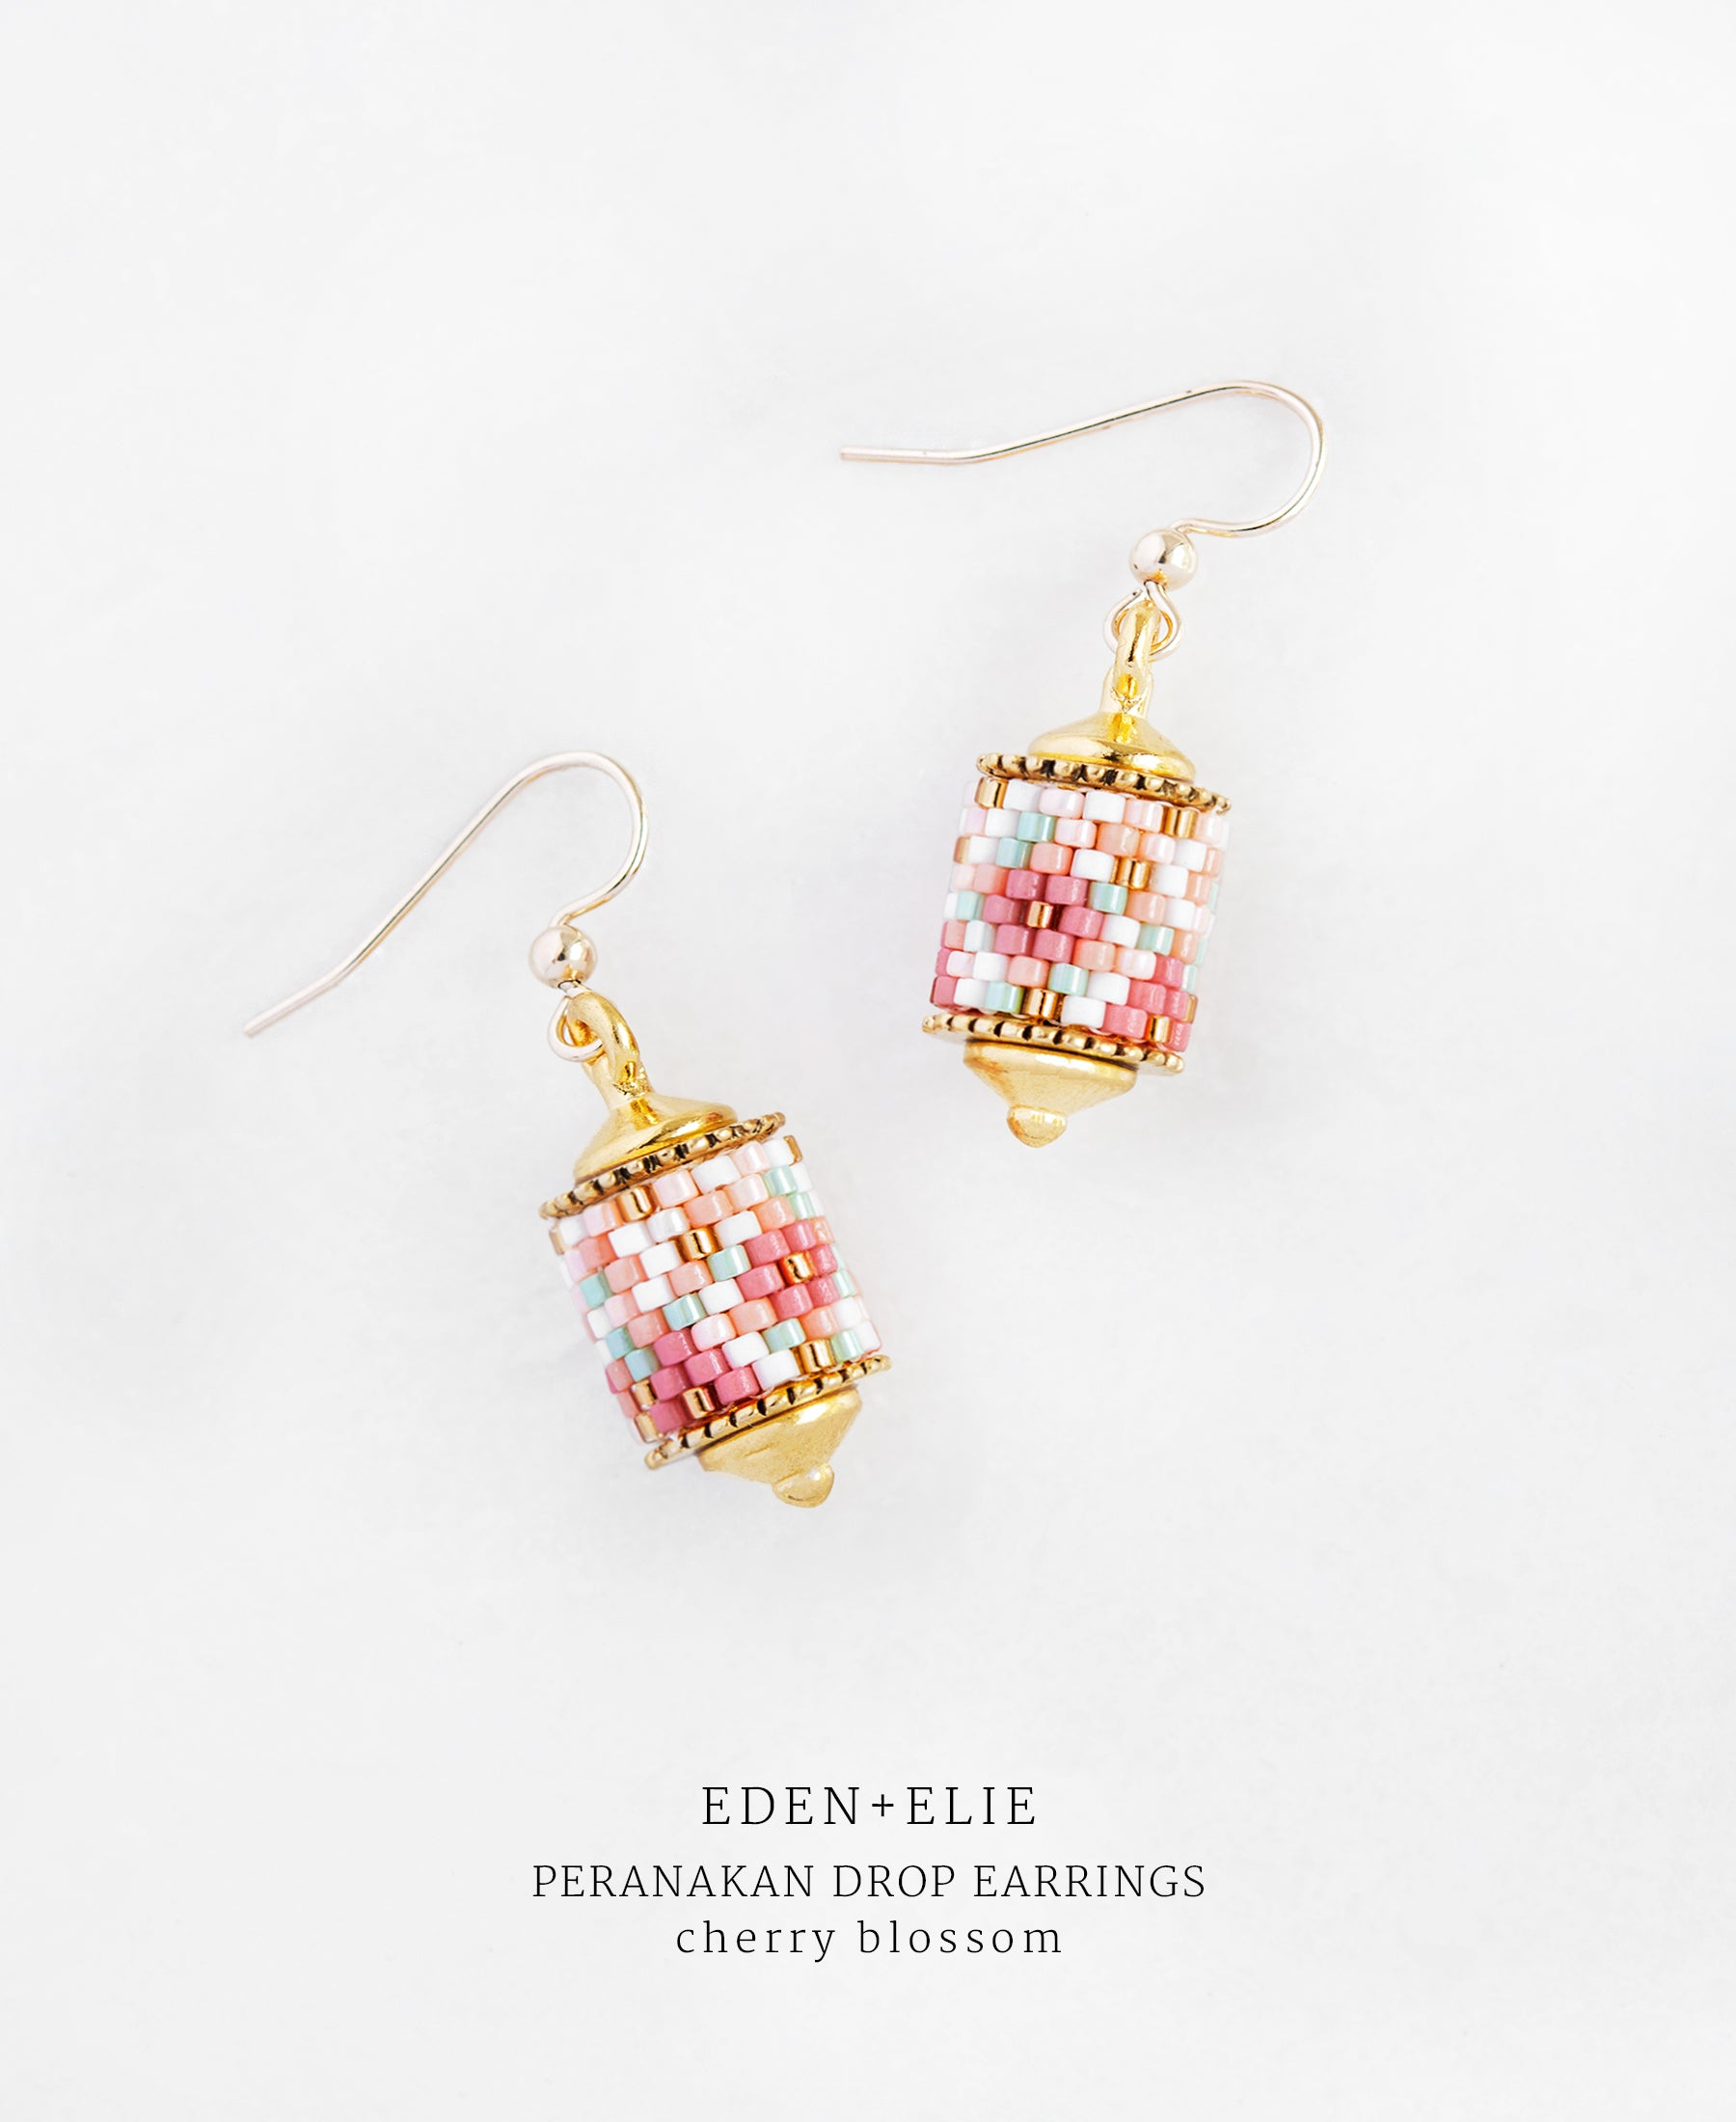 EDEN + ELIE Modern Peranakan drop earrings - cherry blossom